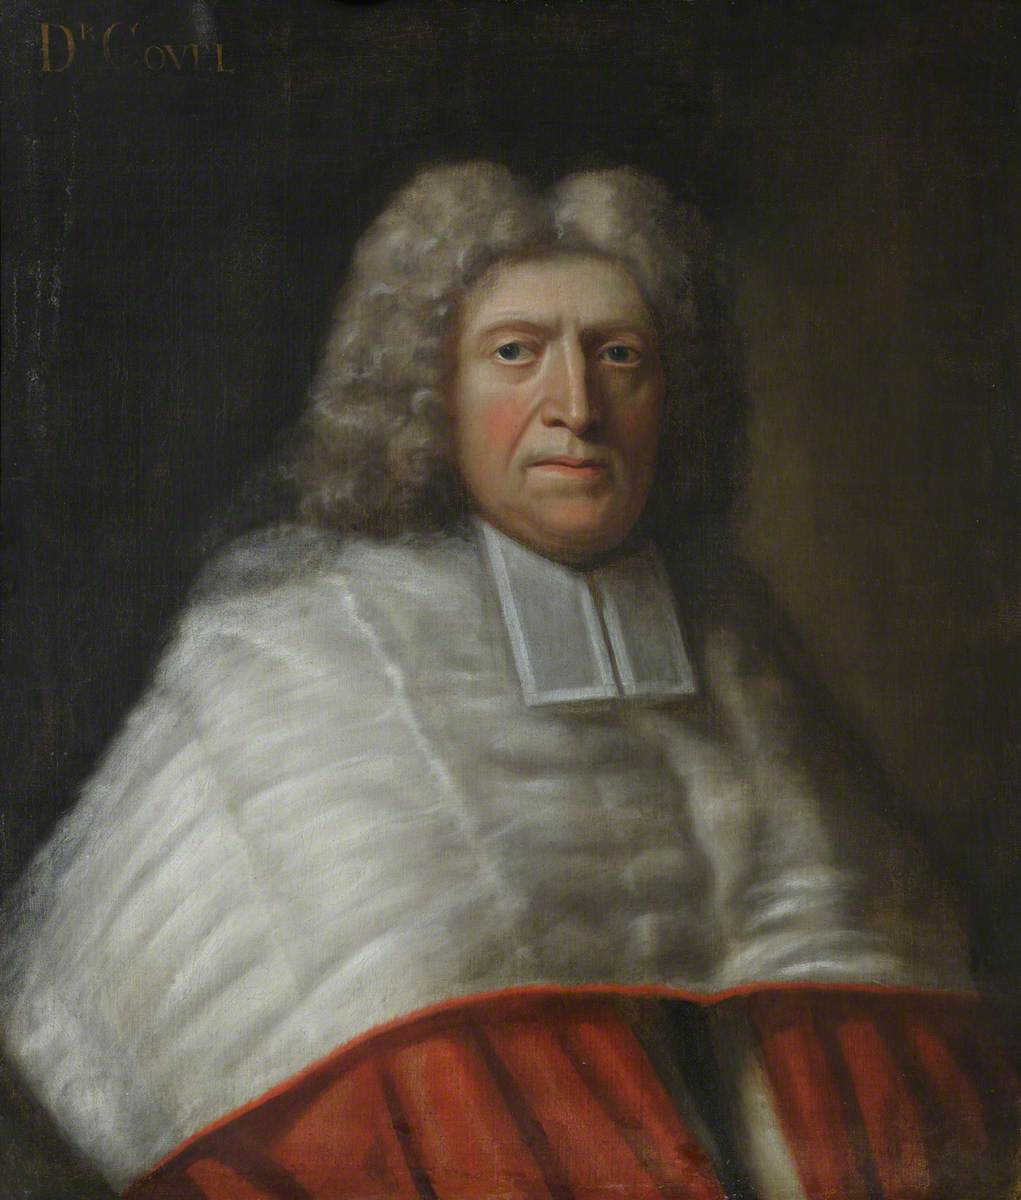 John Covel (1638–1722), Master (1688–1722), Amateur Botanist, Architect and Collector, Vice-Chancellor of the University